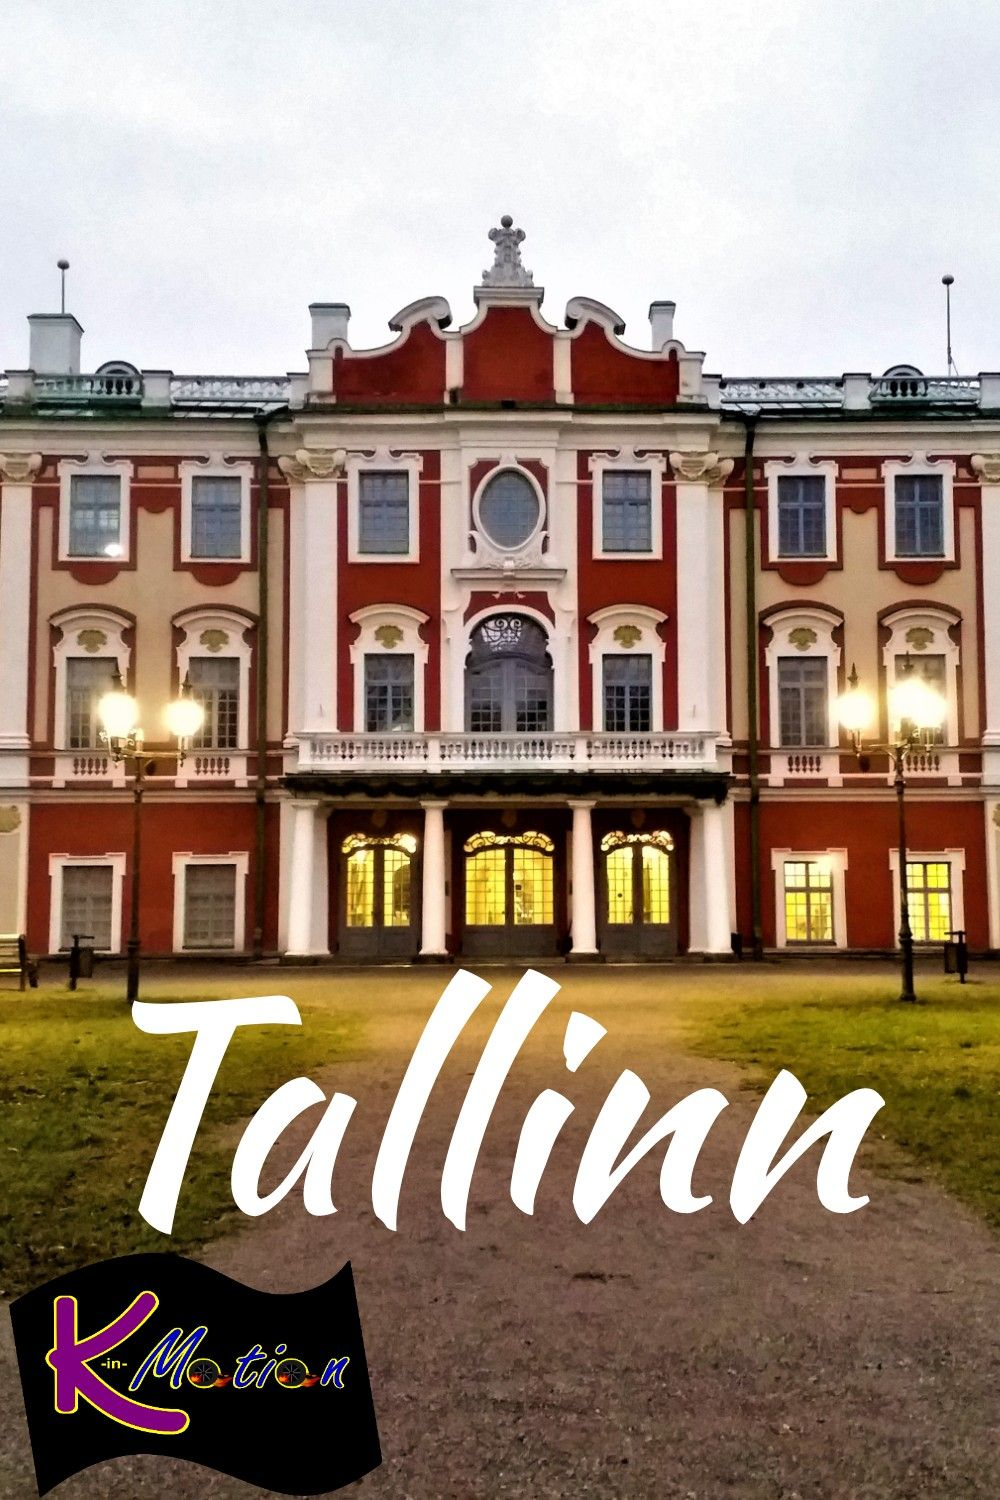 Discover Old and New Tallinn